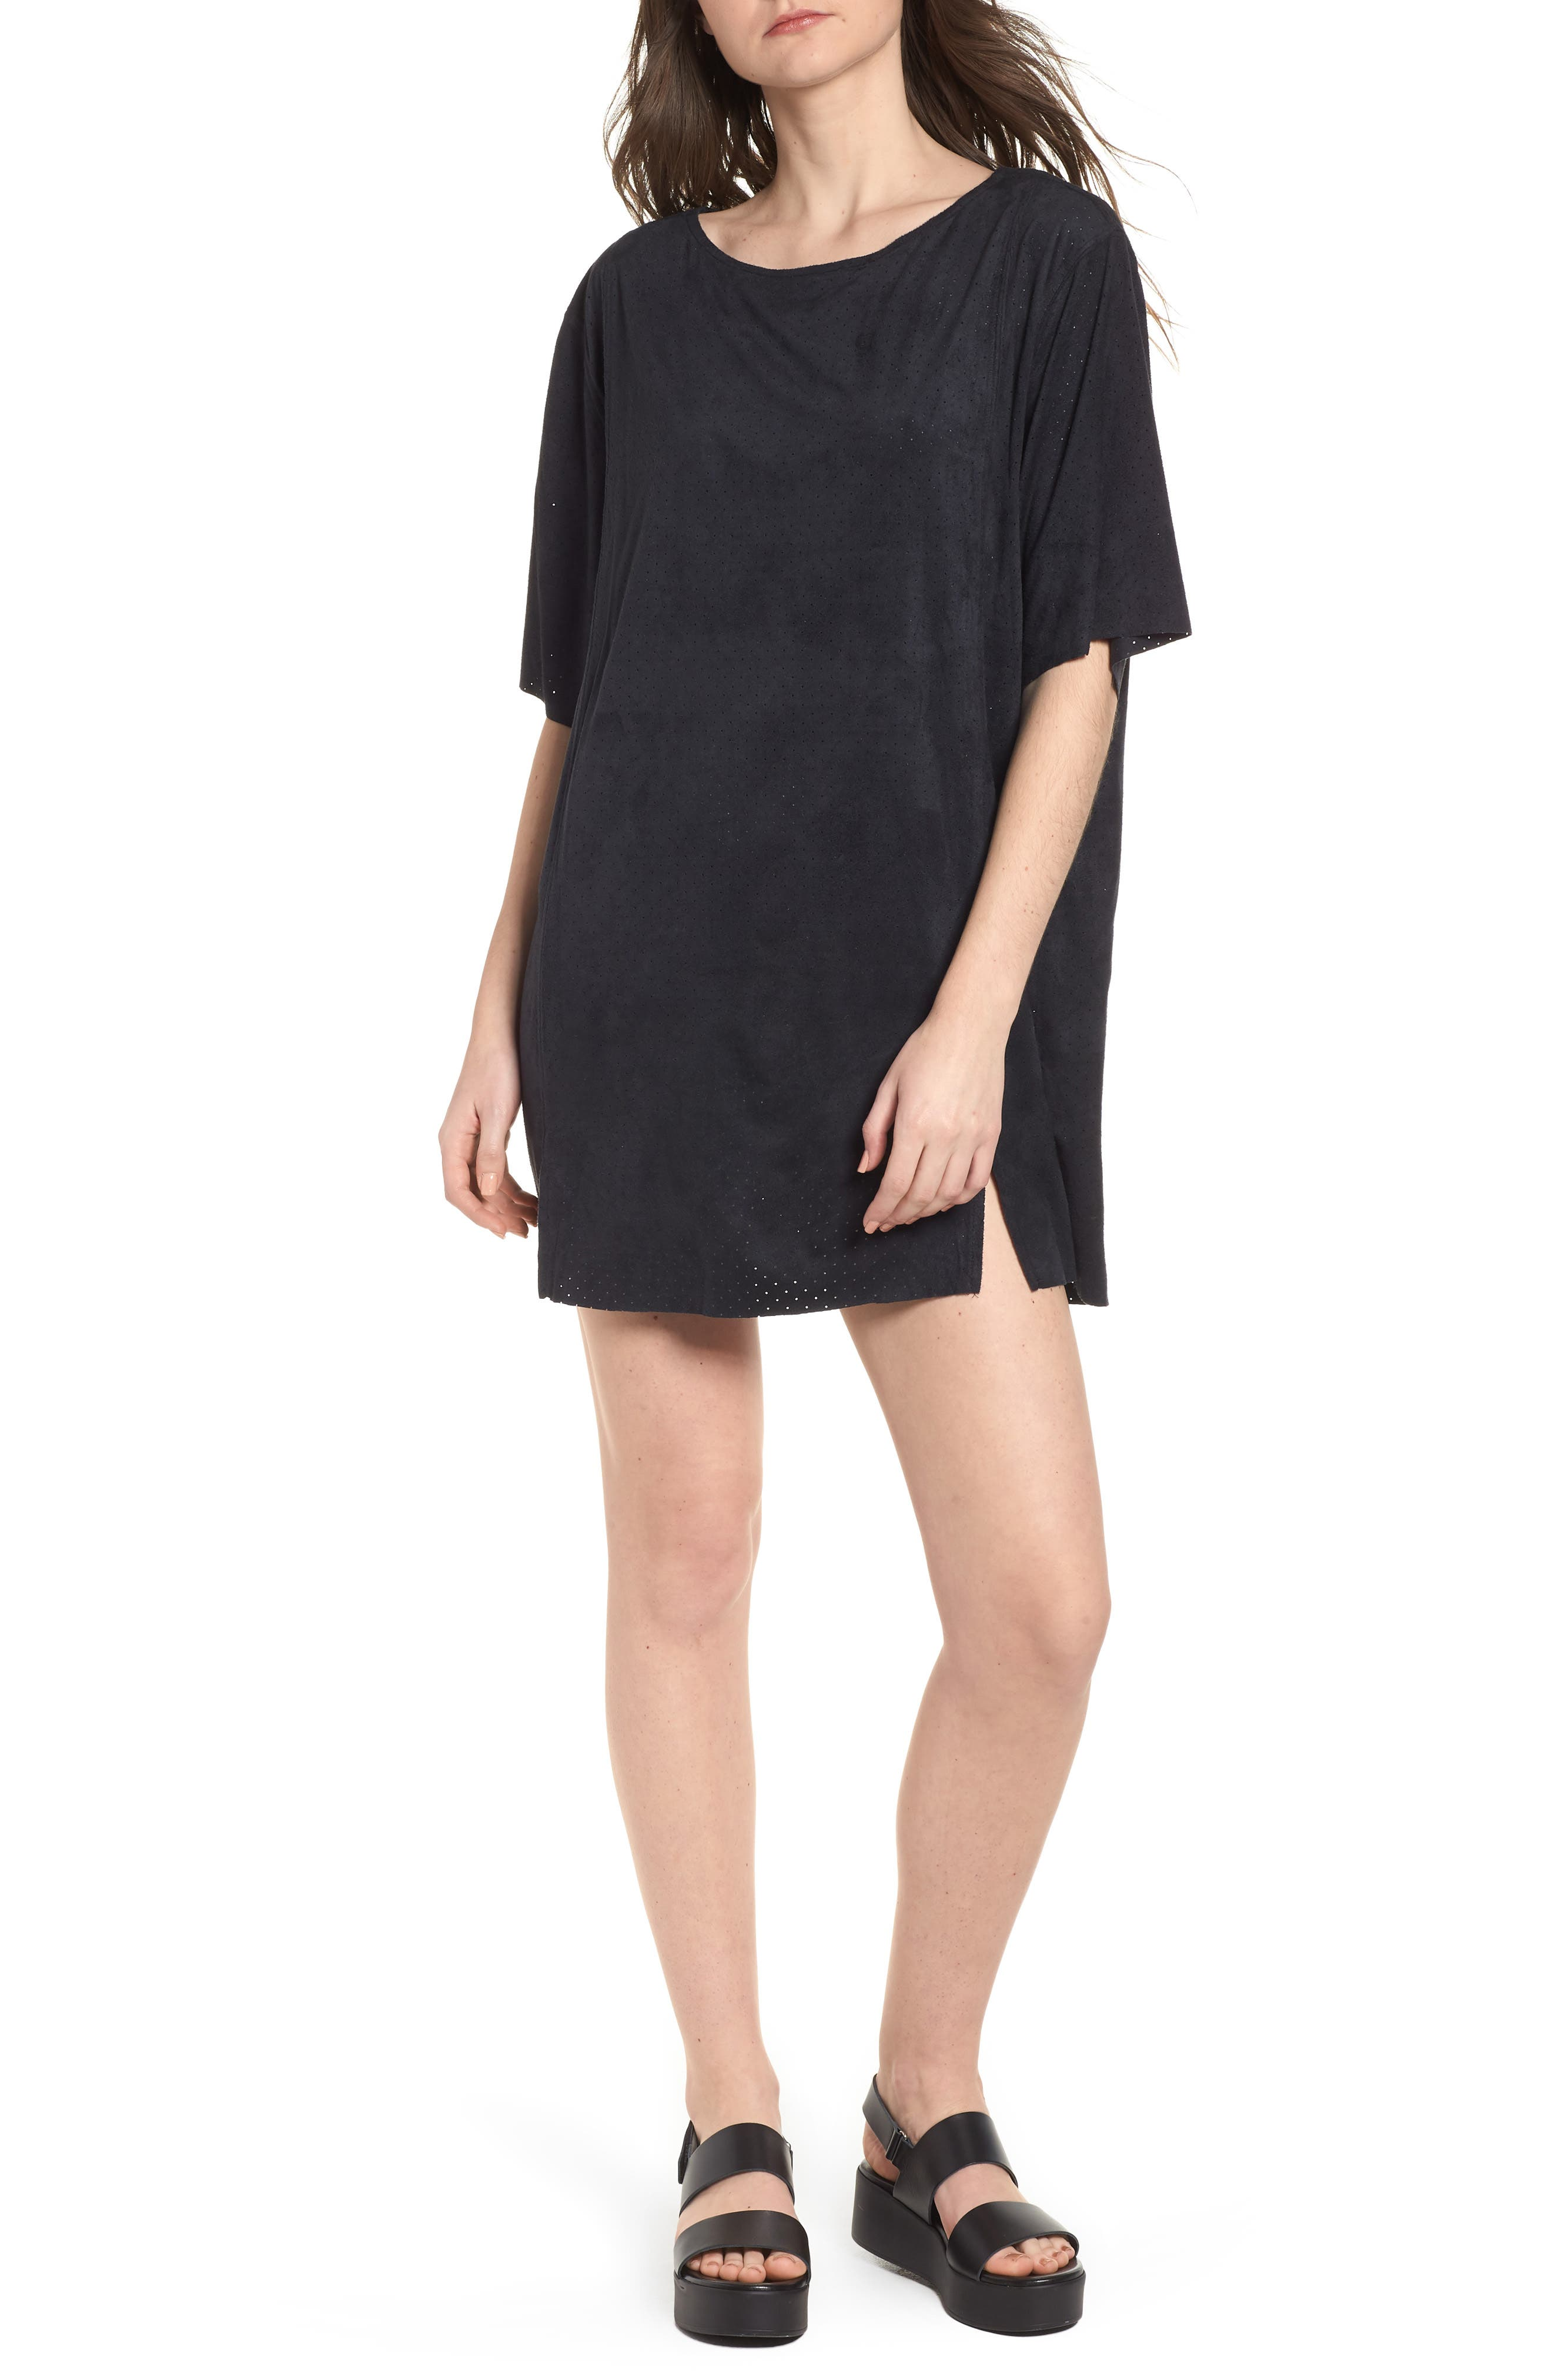 4 the Win Perforated Faux Suede Dress,                         Main,                         color, Black